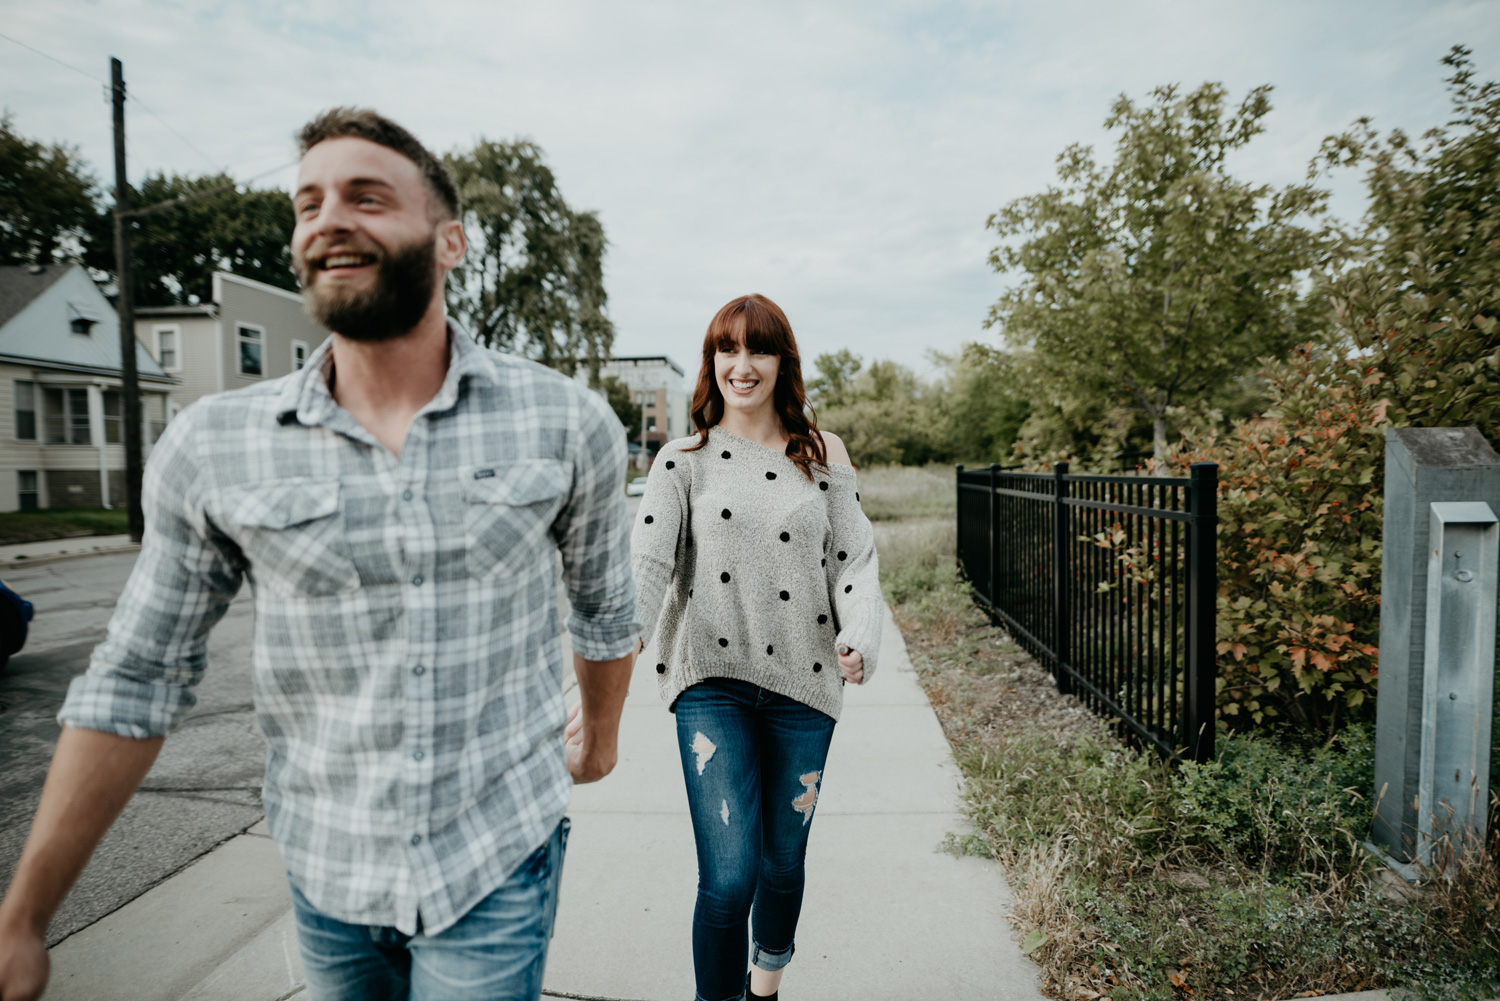 engaged couple walking together laughing